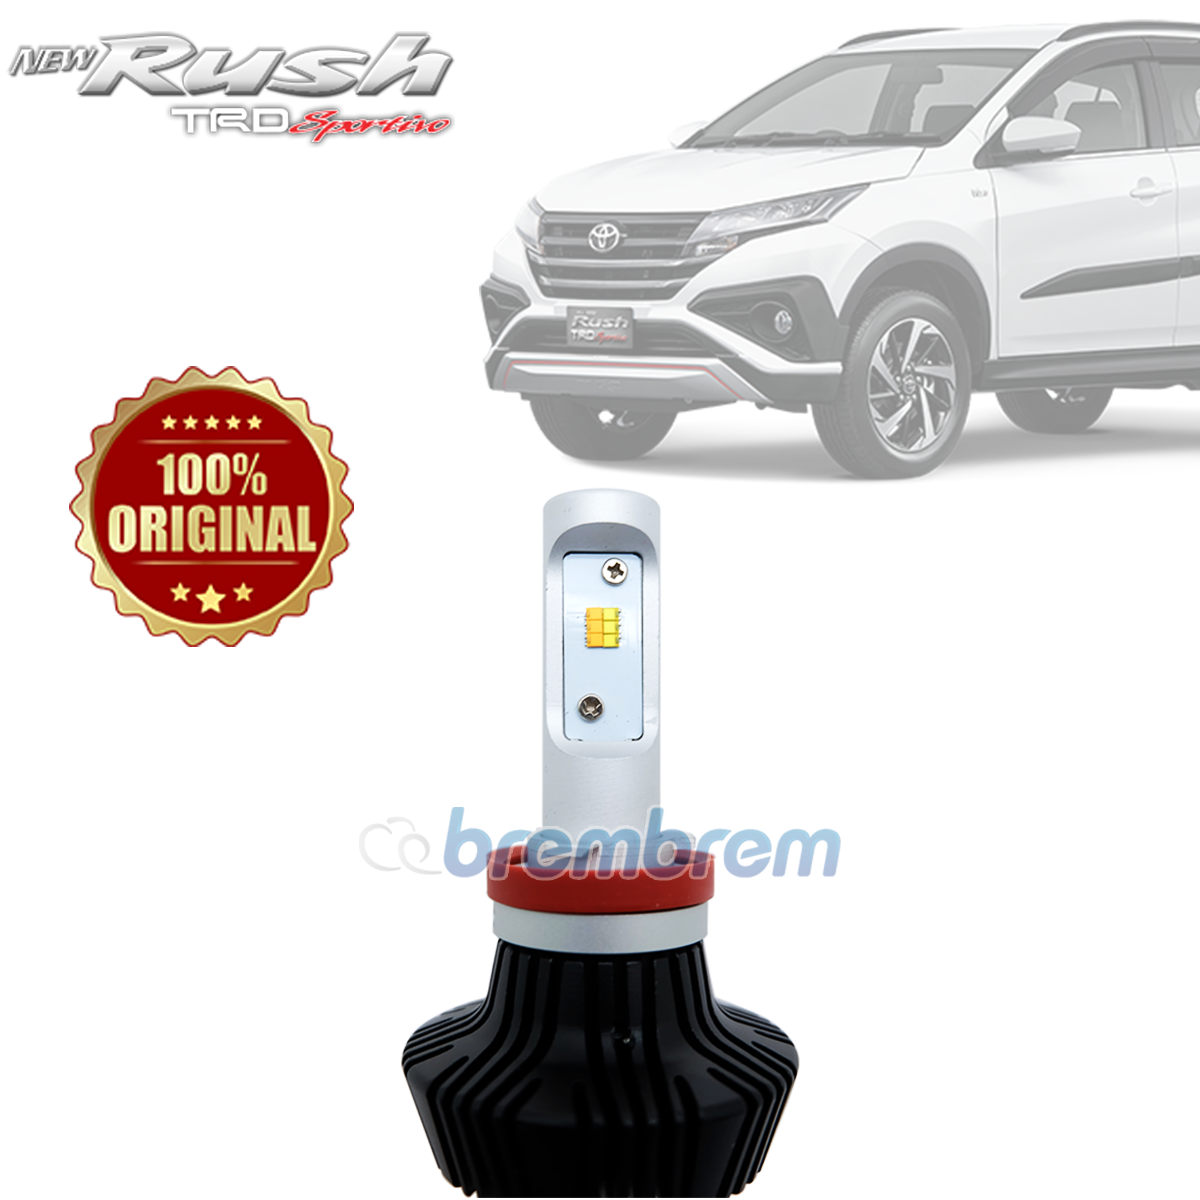 HIRO i-PRECISION H11 DUAL COLOR - LAMPU LED MOBIL TOYOTA ALL NEW RUSH